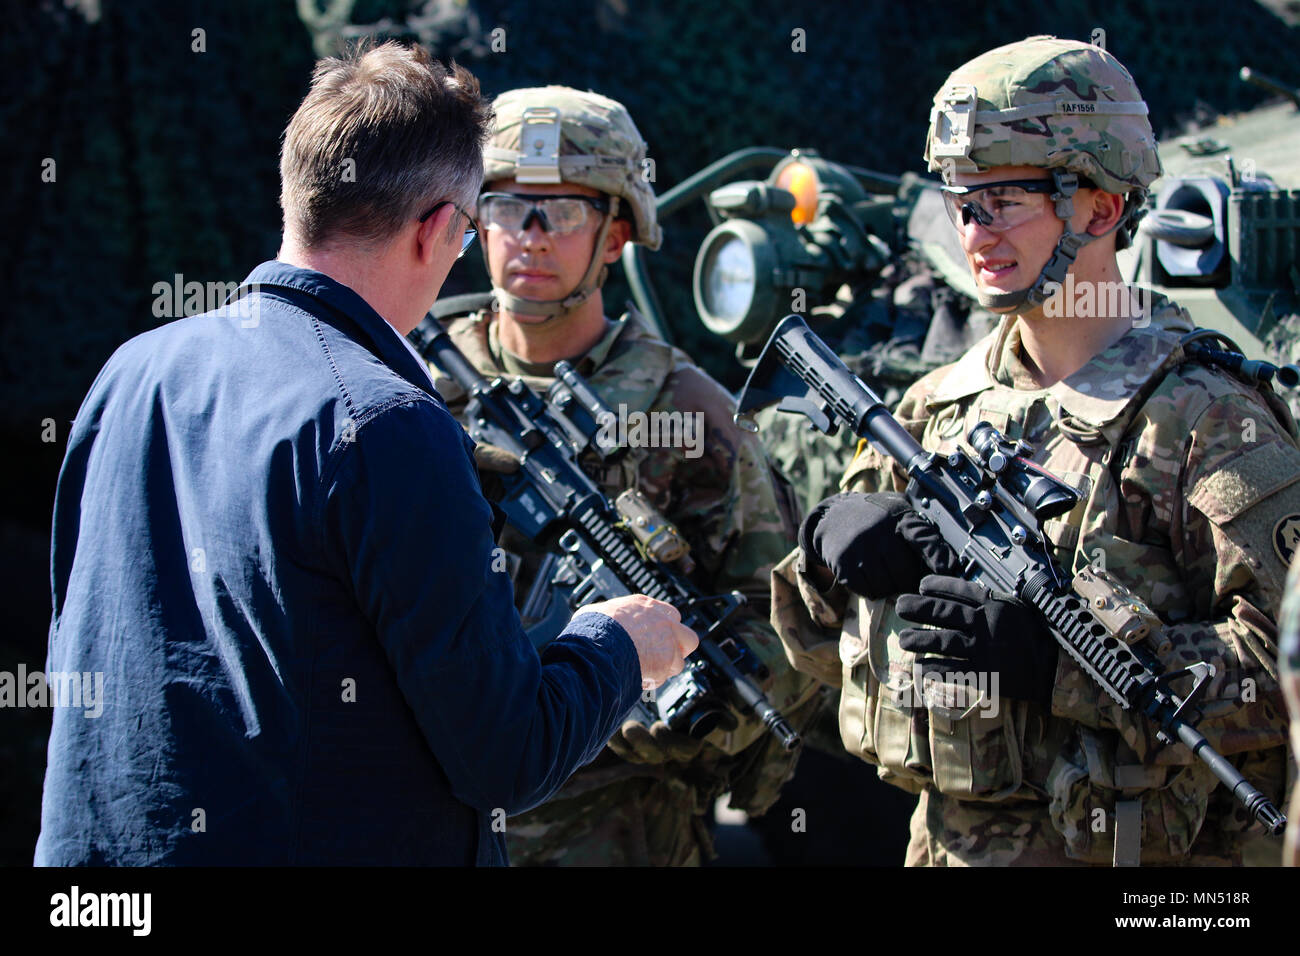 Spc. Michael Hacholski (right), and Pfc. Aidan Flodin (left), infantrymen with the 1st Squadron, 2nd Cavalry Regiment, talk with a student from the Baltic Defense College during an educational visit to Bemowo Piskie Training Area, Poland, May 8, 2018. Battle Group Poland is a unique, multinational coalition of U.S., U.K., Croatian and Romanian Soldiers who serve with the Polish 15th Mechanized Brigade as a deterrence force in support of NATO's Enhanced Forward Presence. (U.S. Army photo by Spc. Hubert D. Delany III /22nd Mobile Public Affairs Detachment) Stock Photo